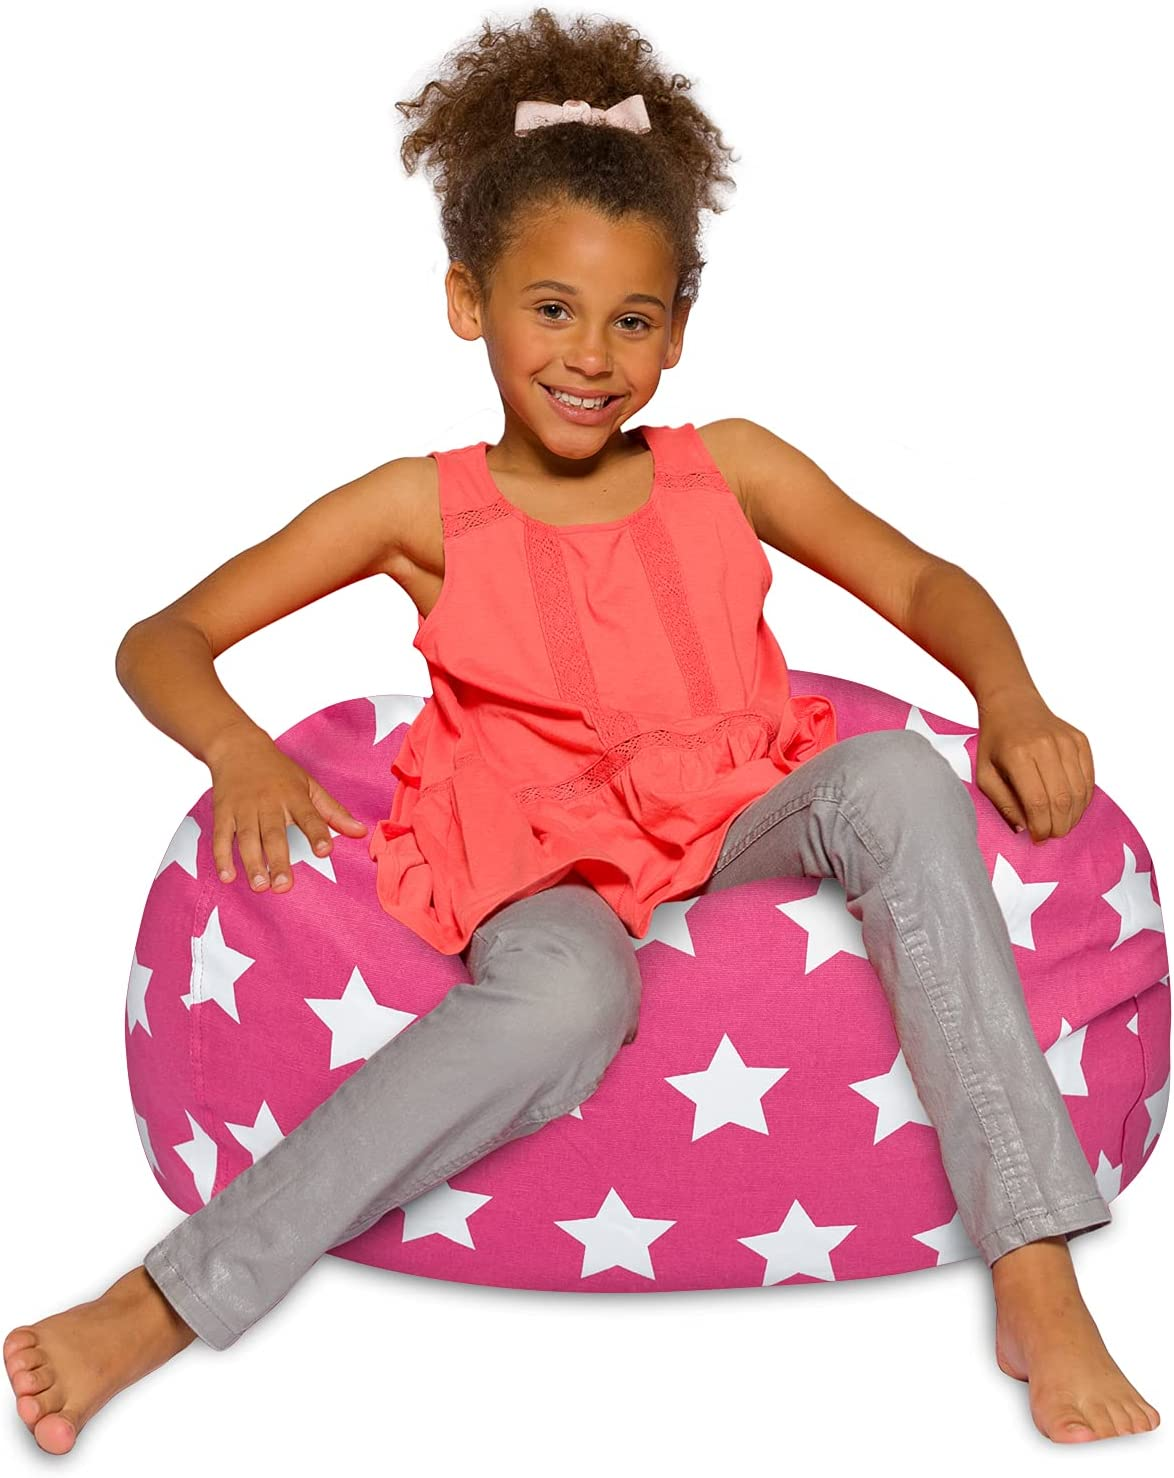 Posh Creations Bean Bag Chair for and 5% OFF Teens Includ Kids Adults Directly managed store